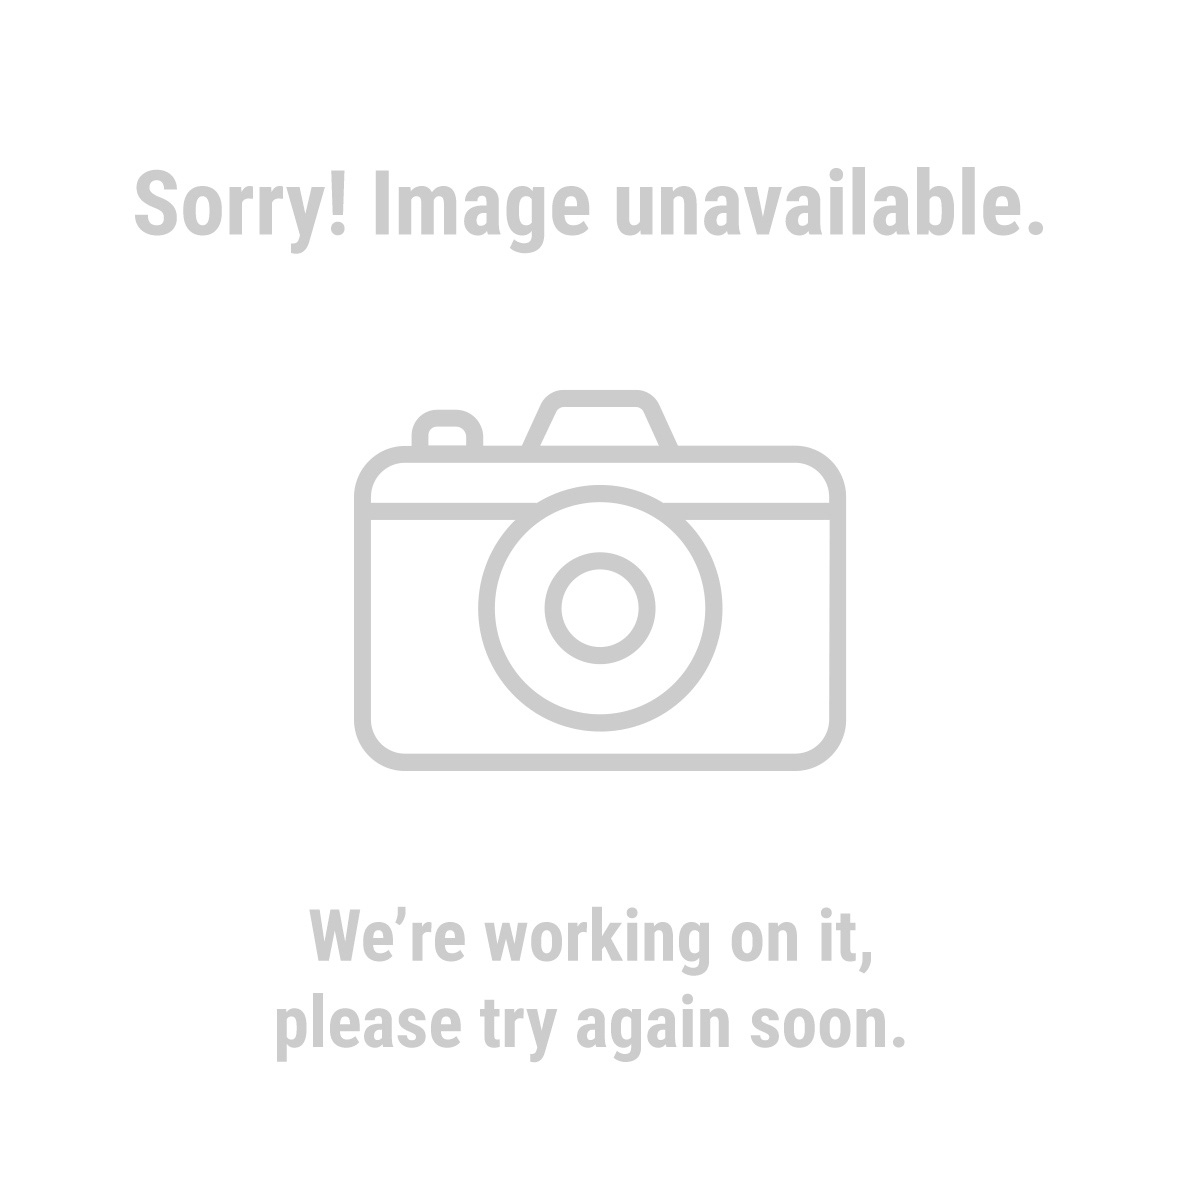 Storehouse® 67550 40 Piece Molly Bolt Assortment